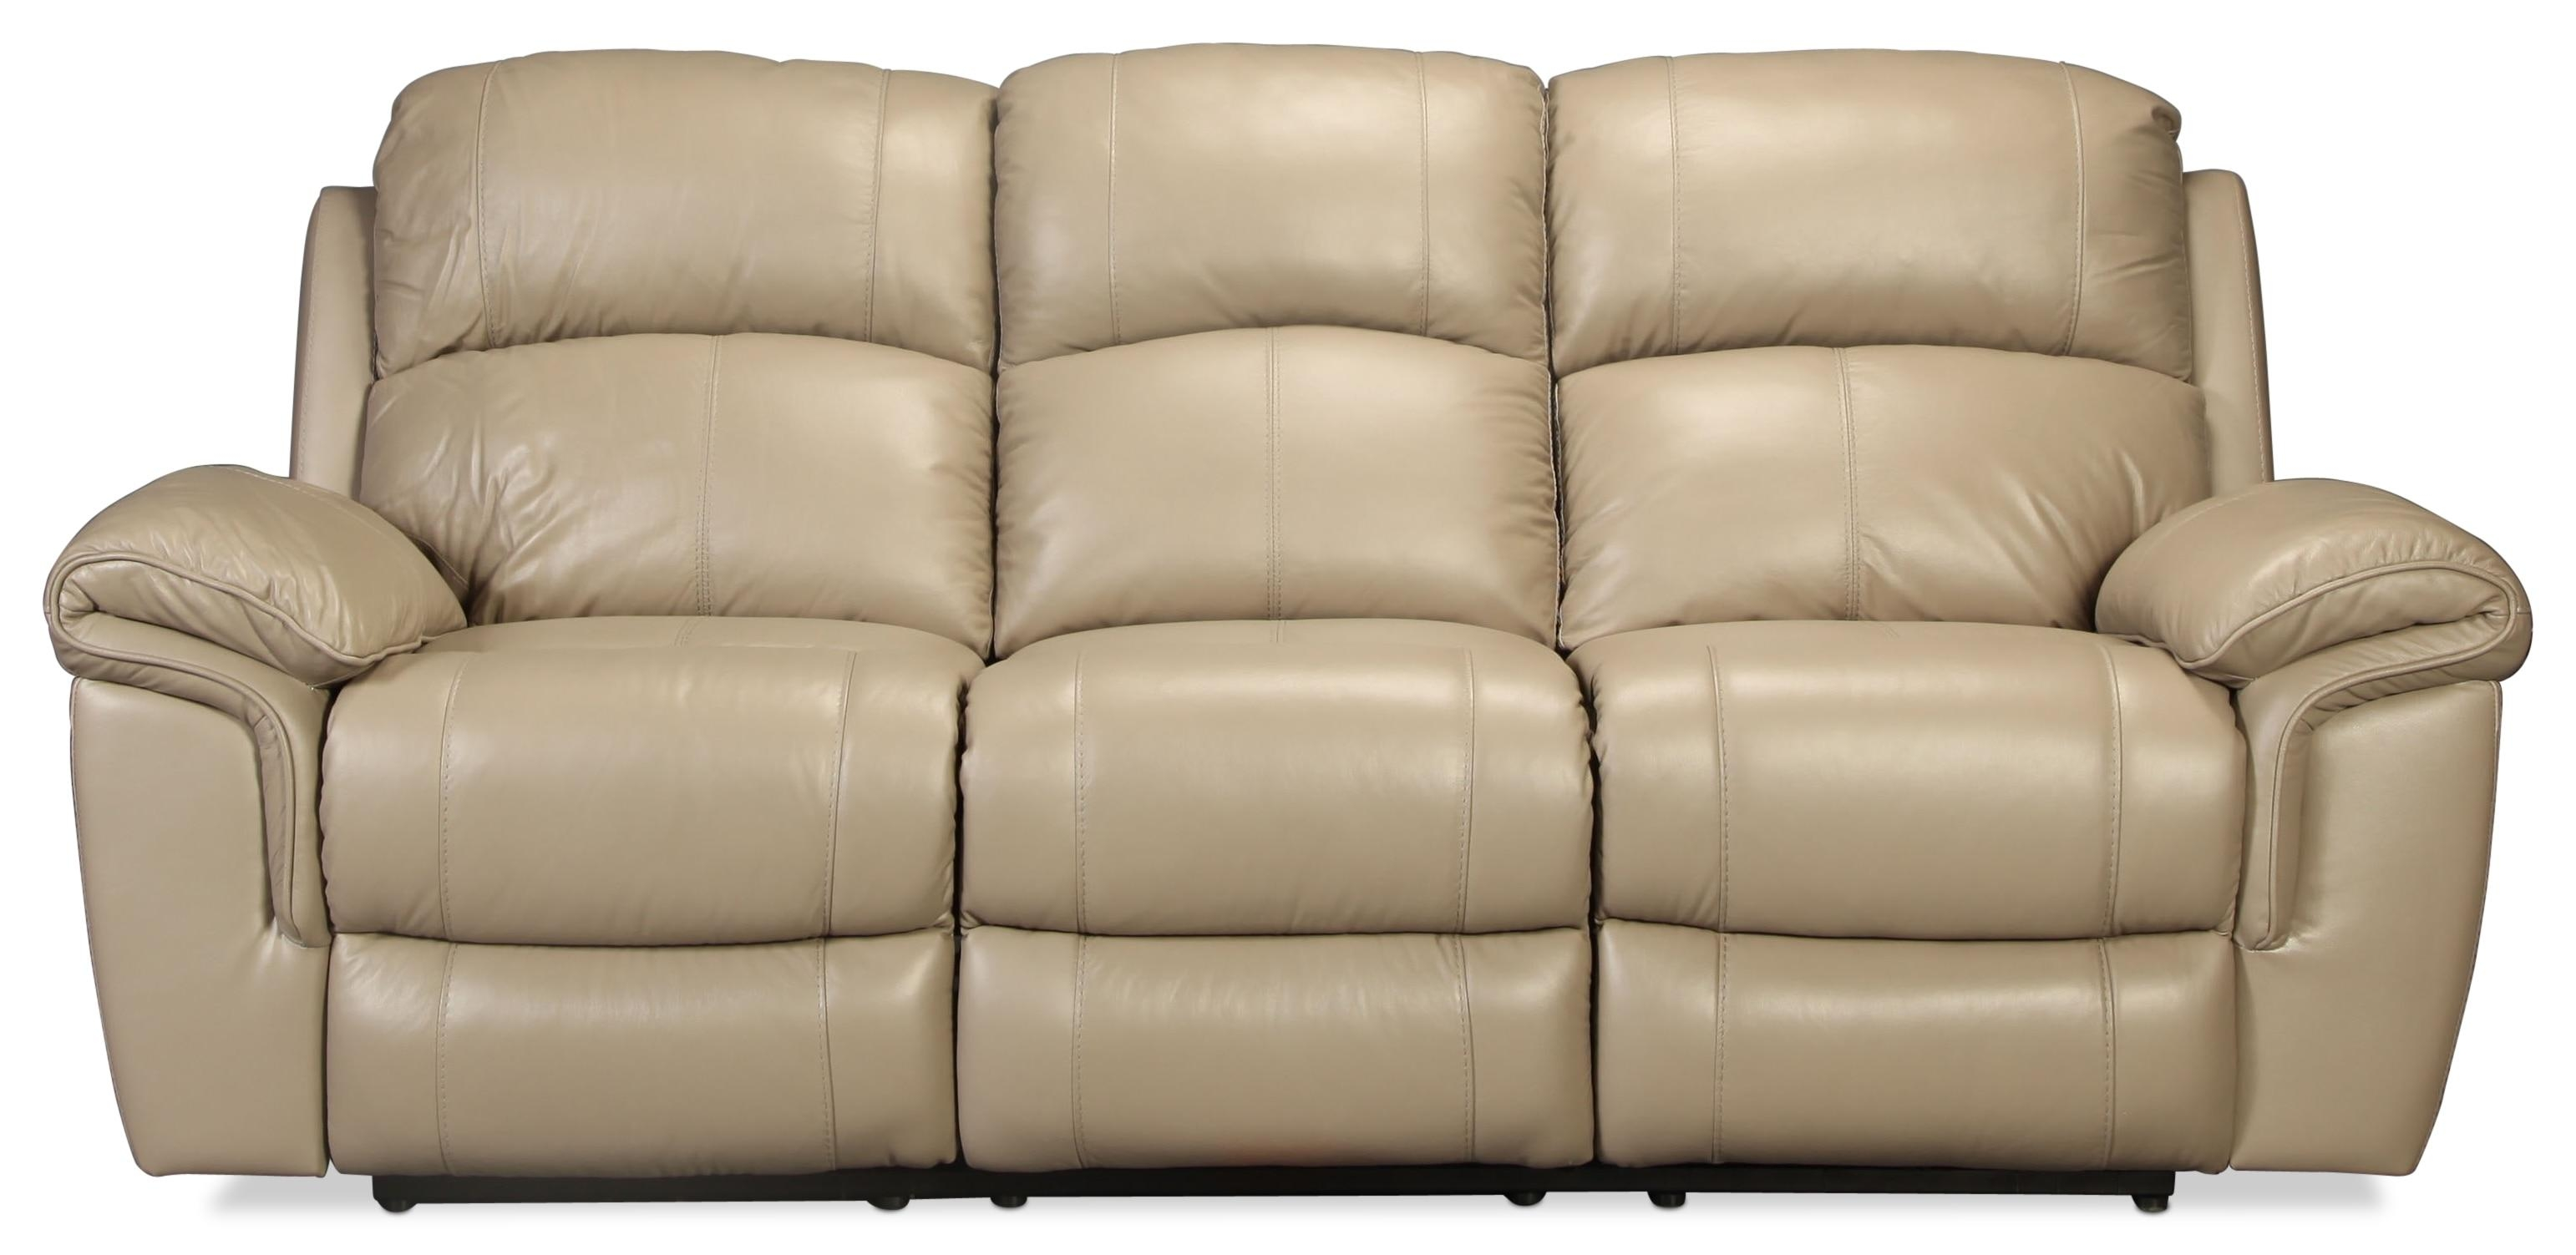 Braxton Power Reclining Sofa | Levin Furniture Within Braxton Sofa (Image 7 of 20)